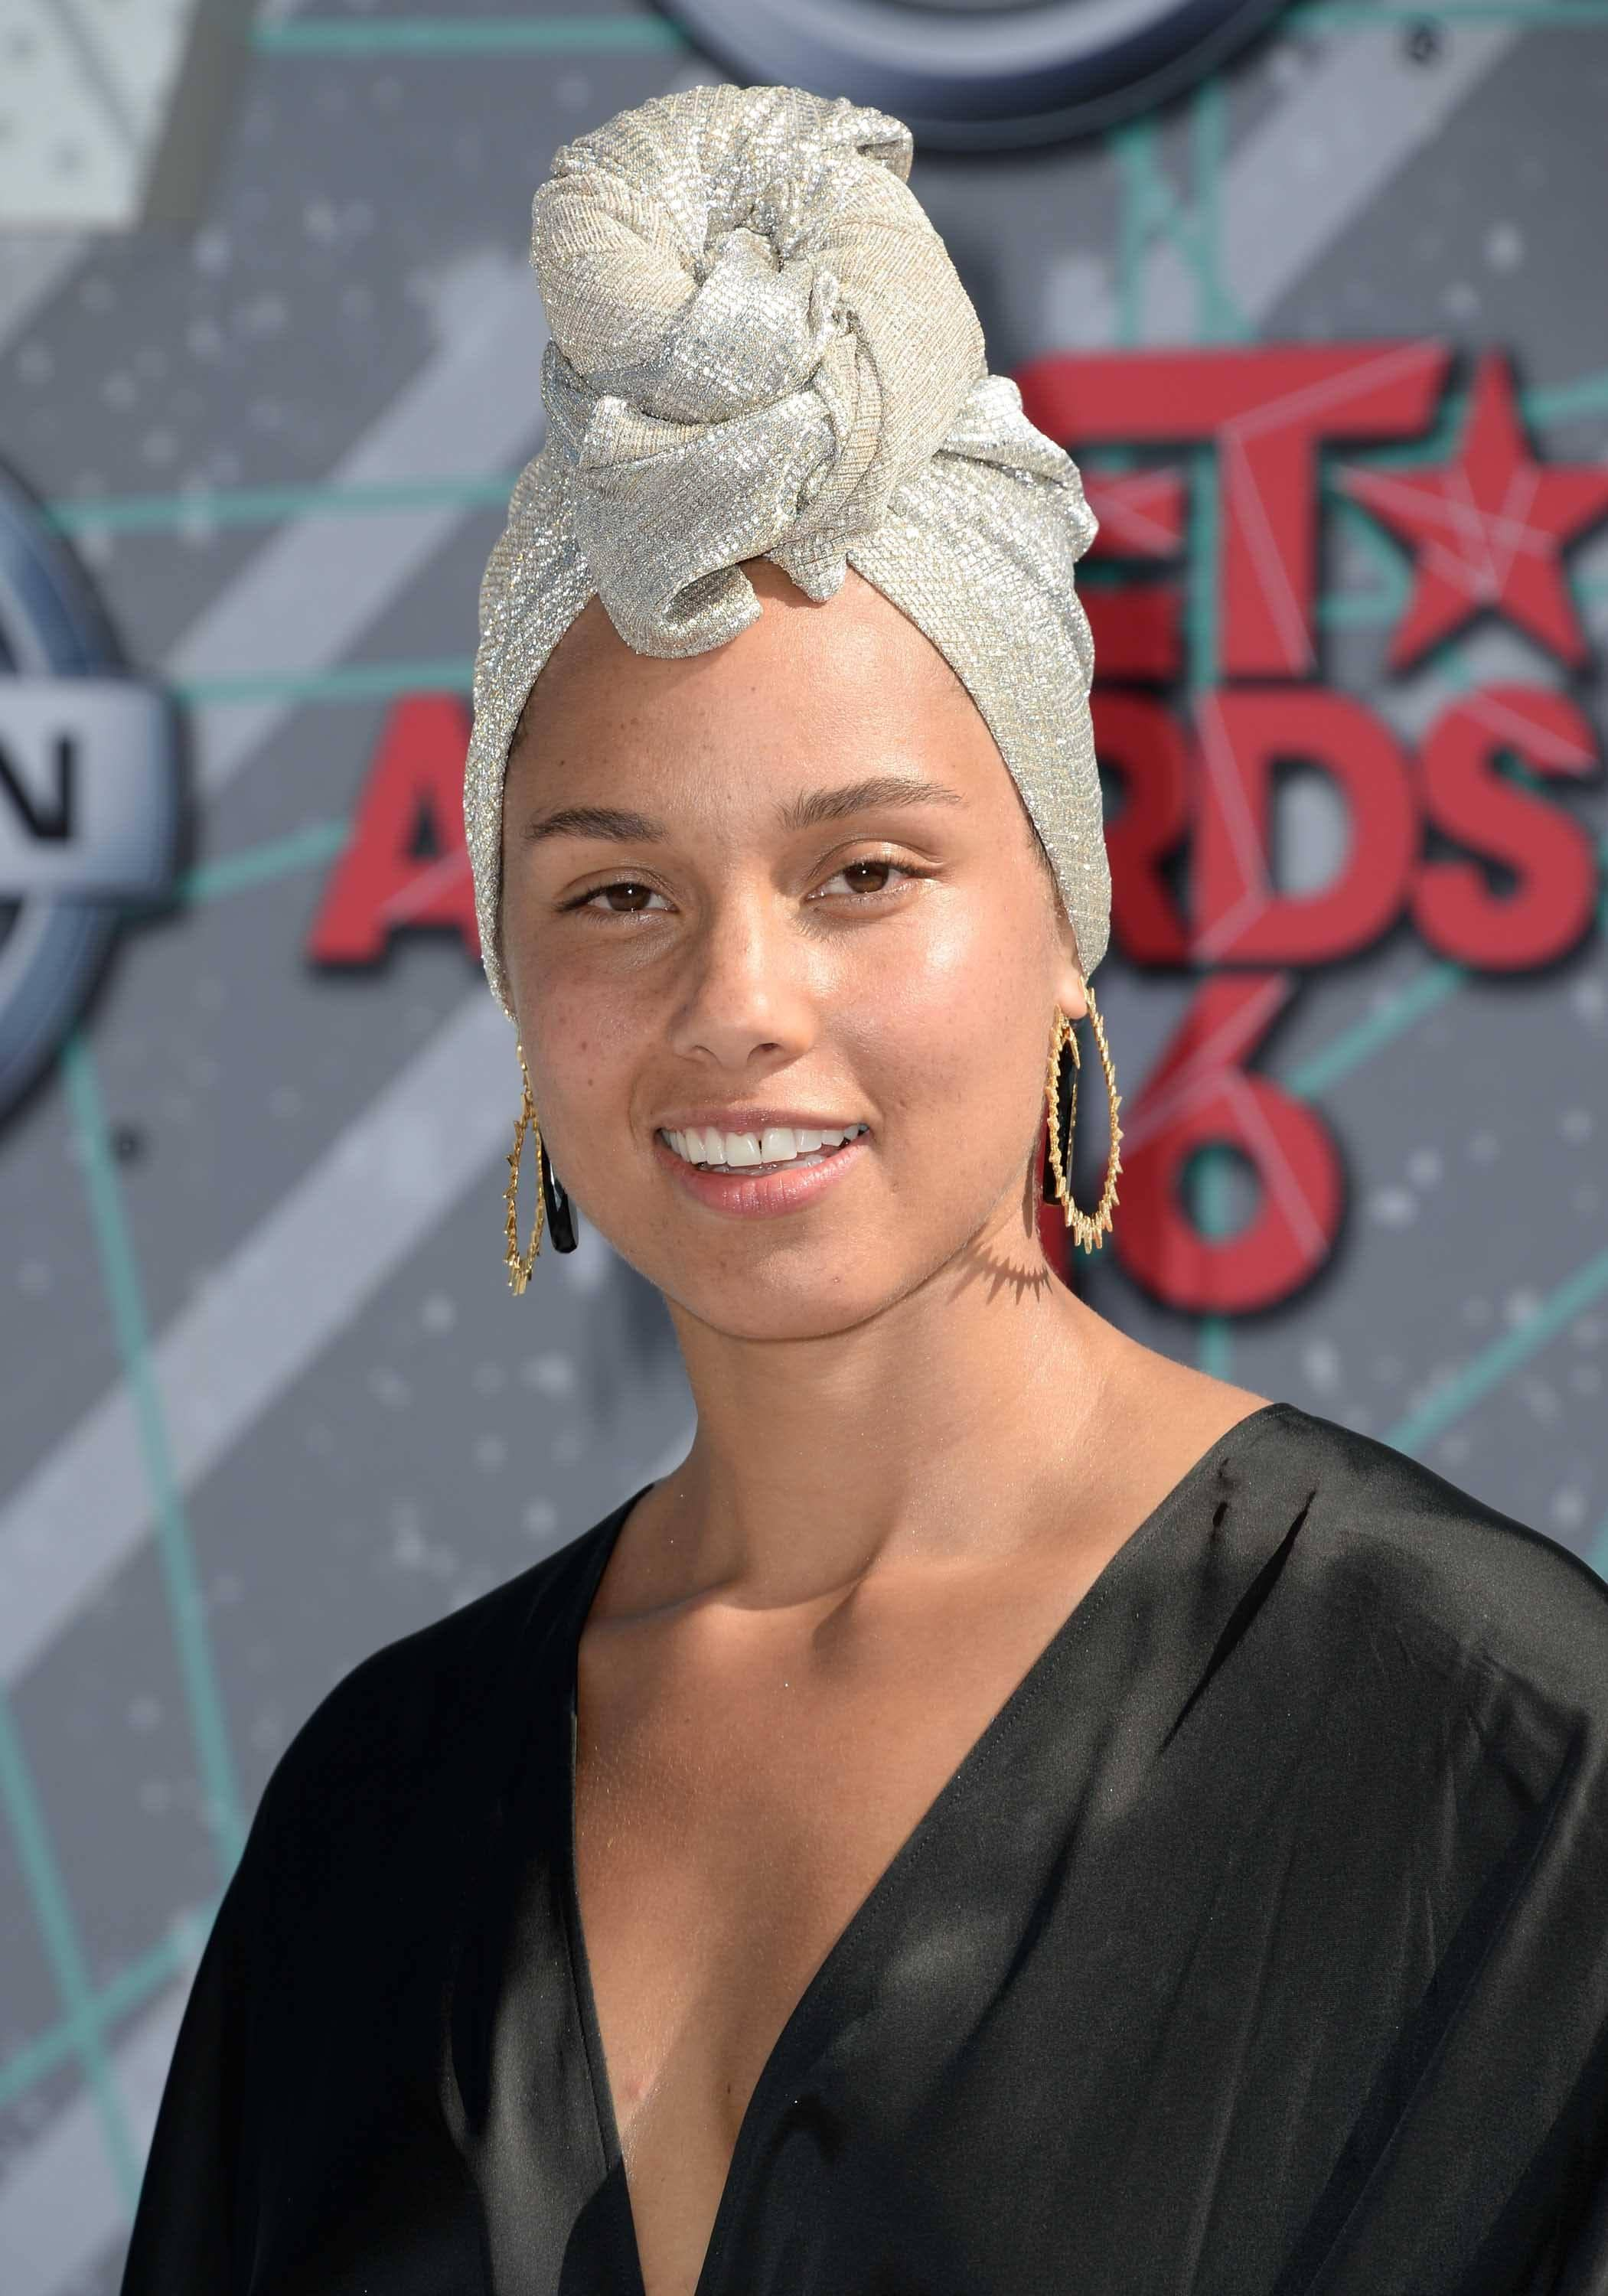 hair accessories 2016: All Things Hair - IMAGE - celebrity hairstyles Alicia Keys headwrap